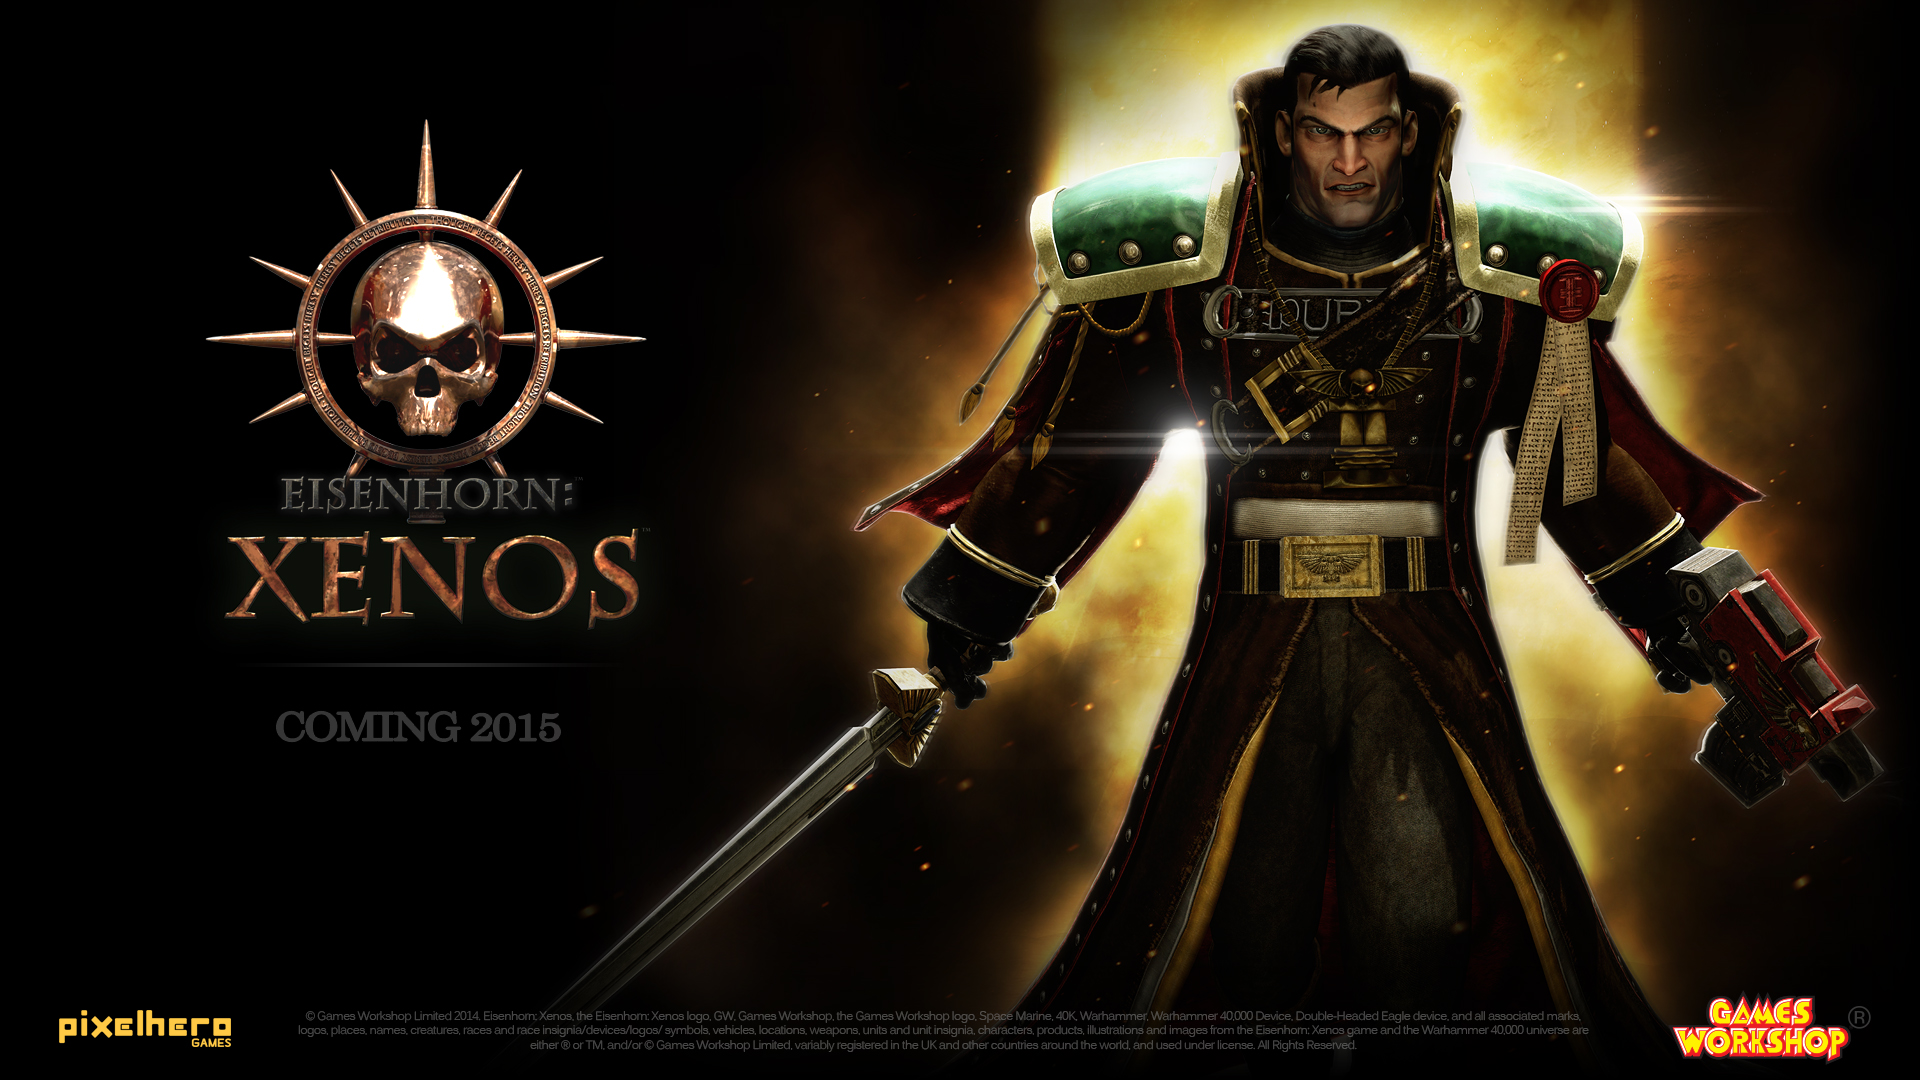 GDC 2015: Hands-on with Eisenhorn: Xenos - the Warhammer game that favours brawn over brains